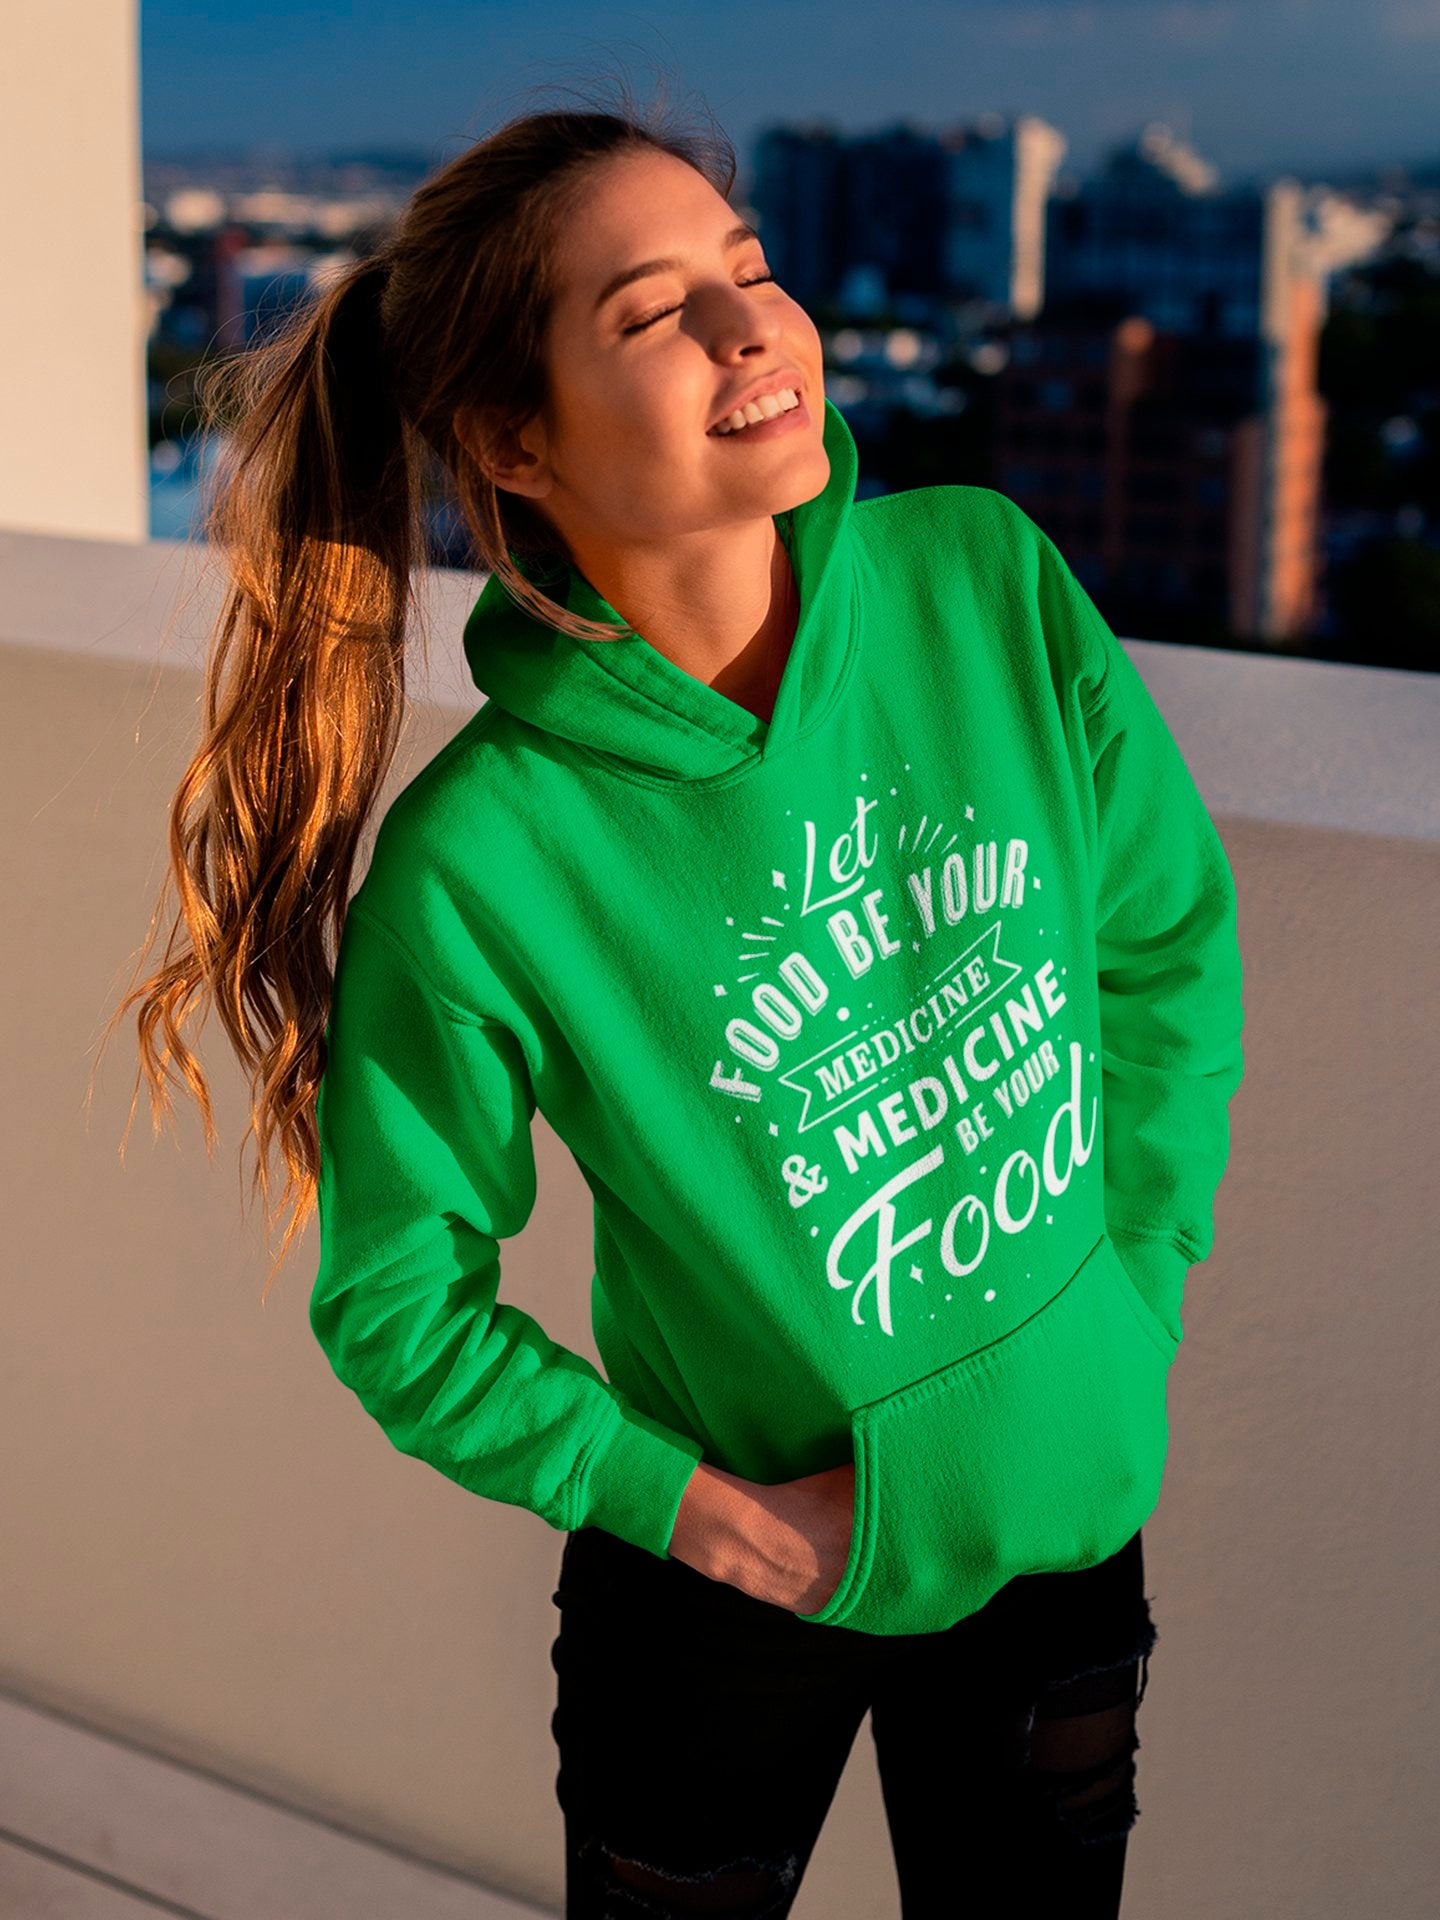 Let food be your medicine - Green hoodie - Vegan